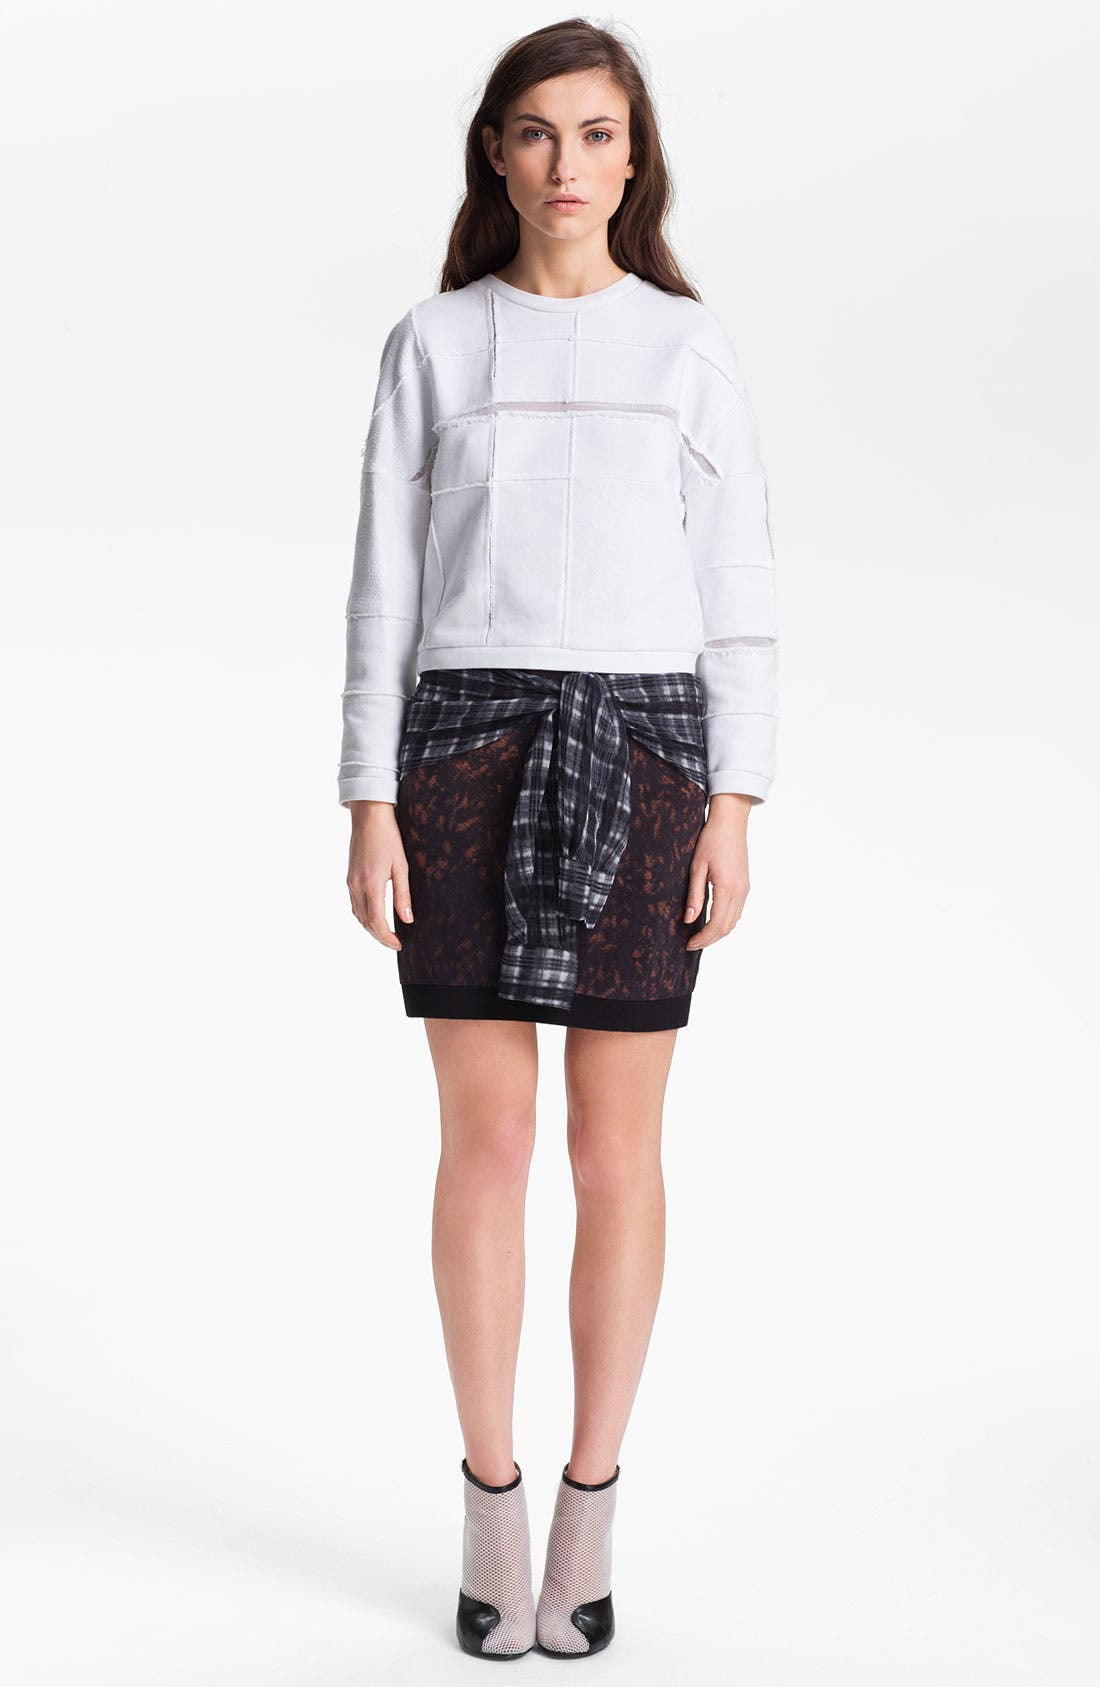 Alternate Image 1 Selected - 3.1 Phillip Lim 'Cut Up' Plaid Sweatshirt